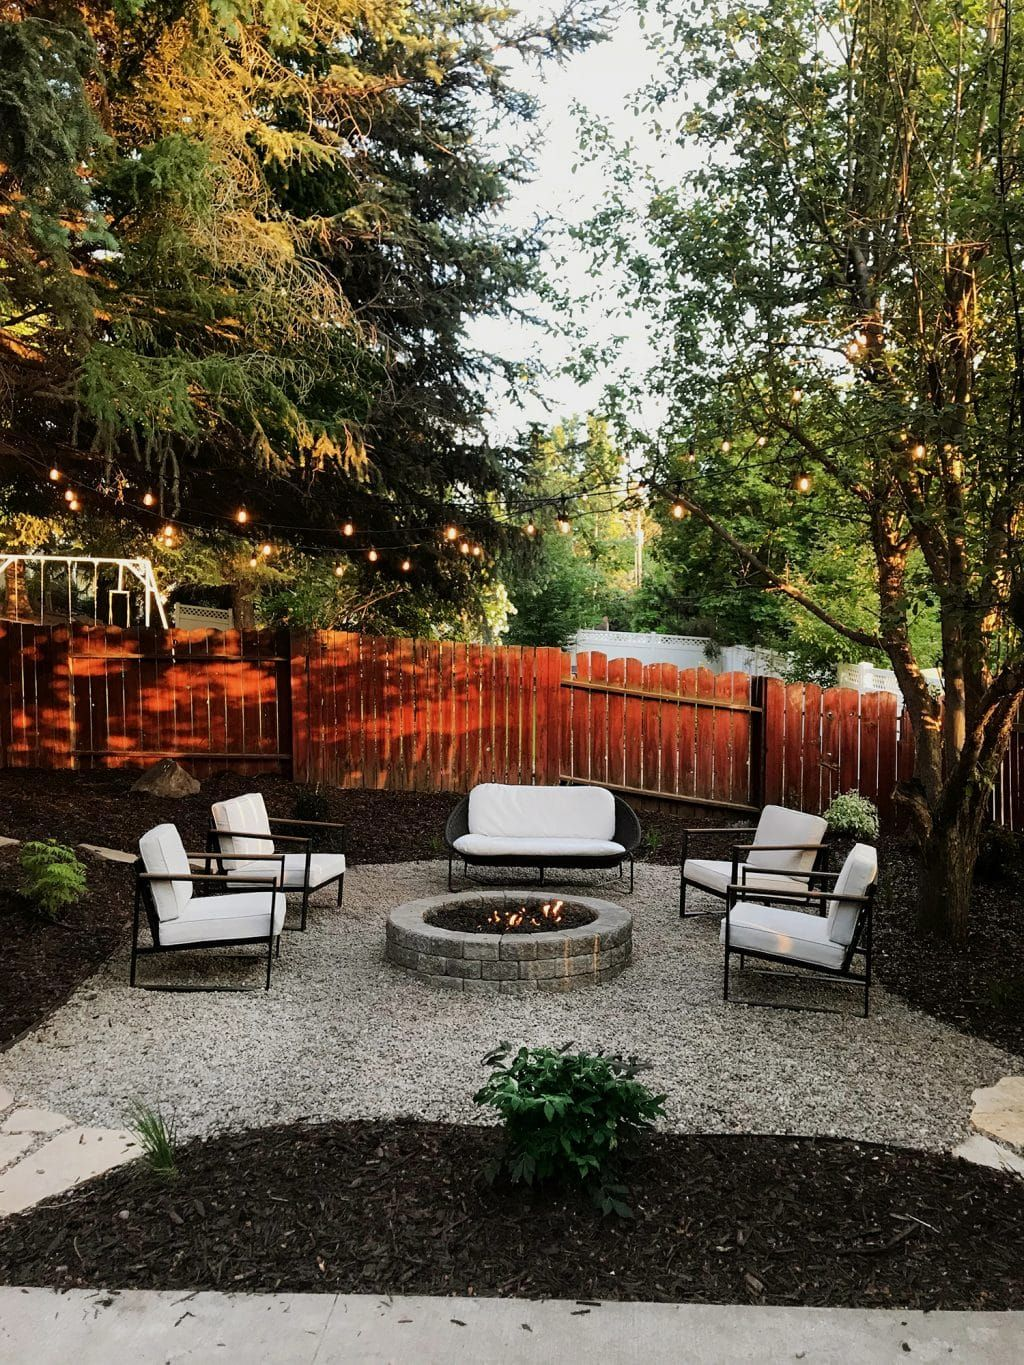 A Backyard Makeover in a Weekend